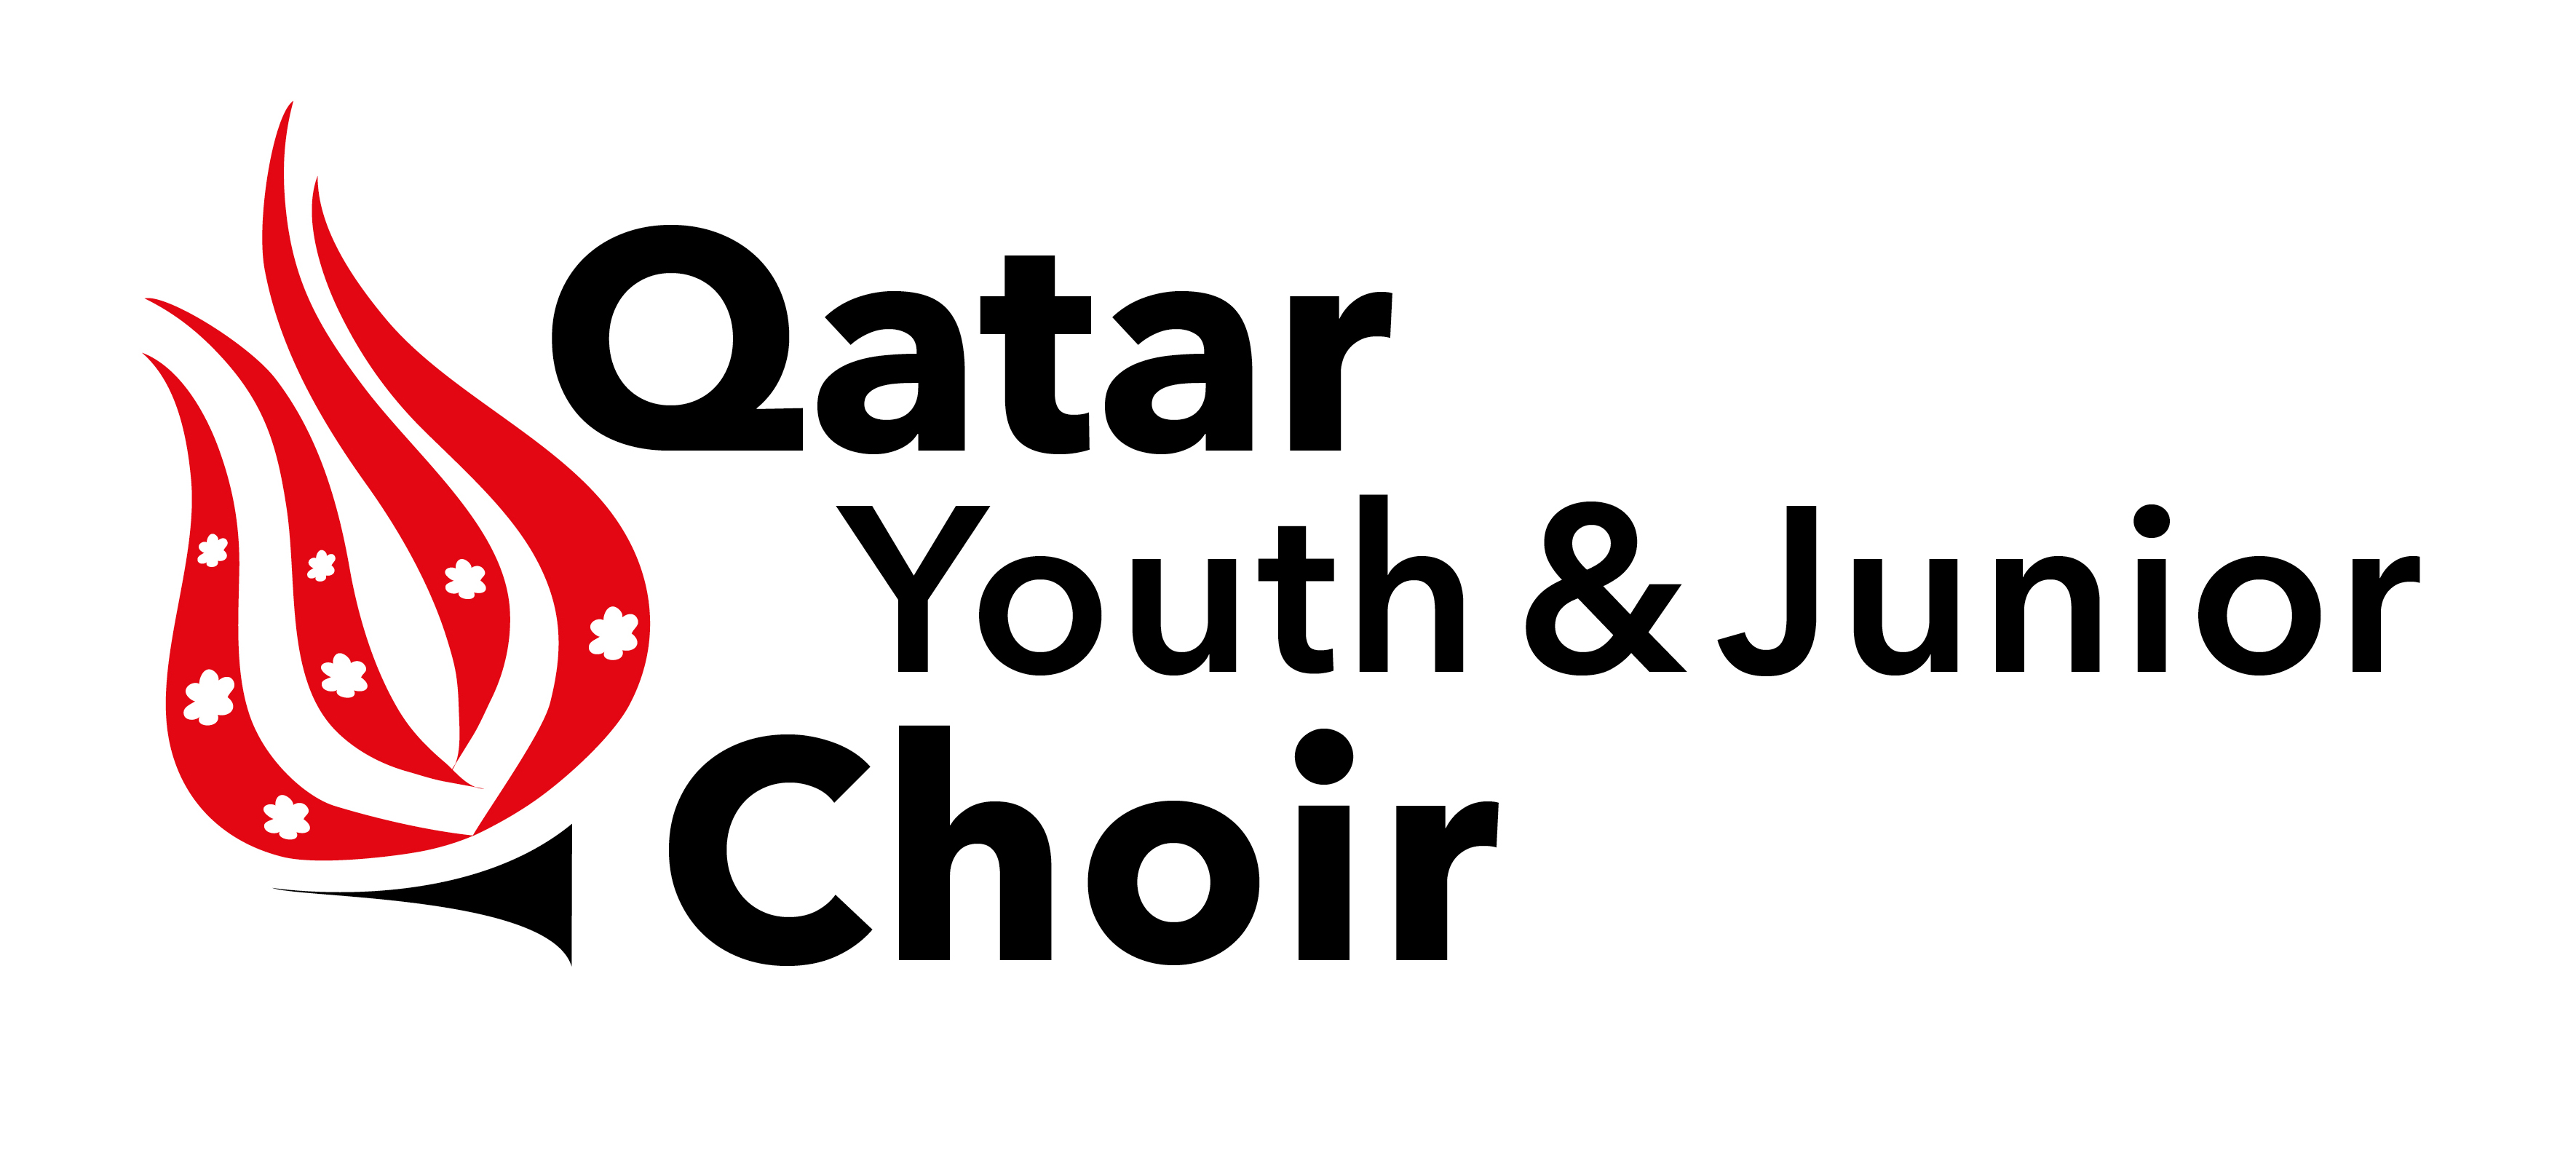 Qatar Youth and JuniorChoir